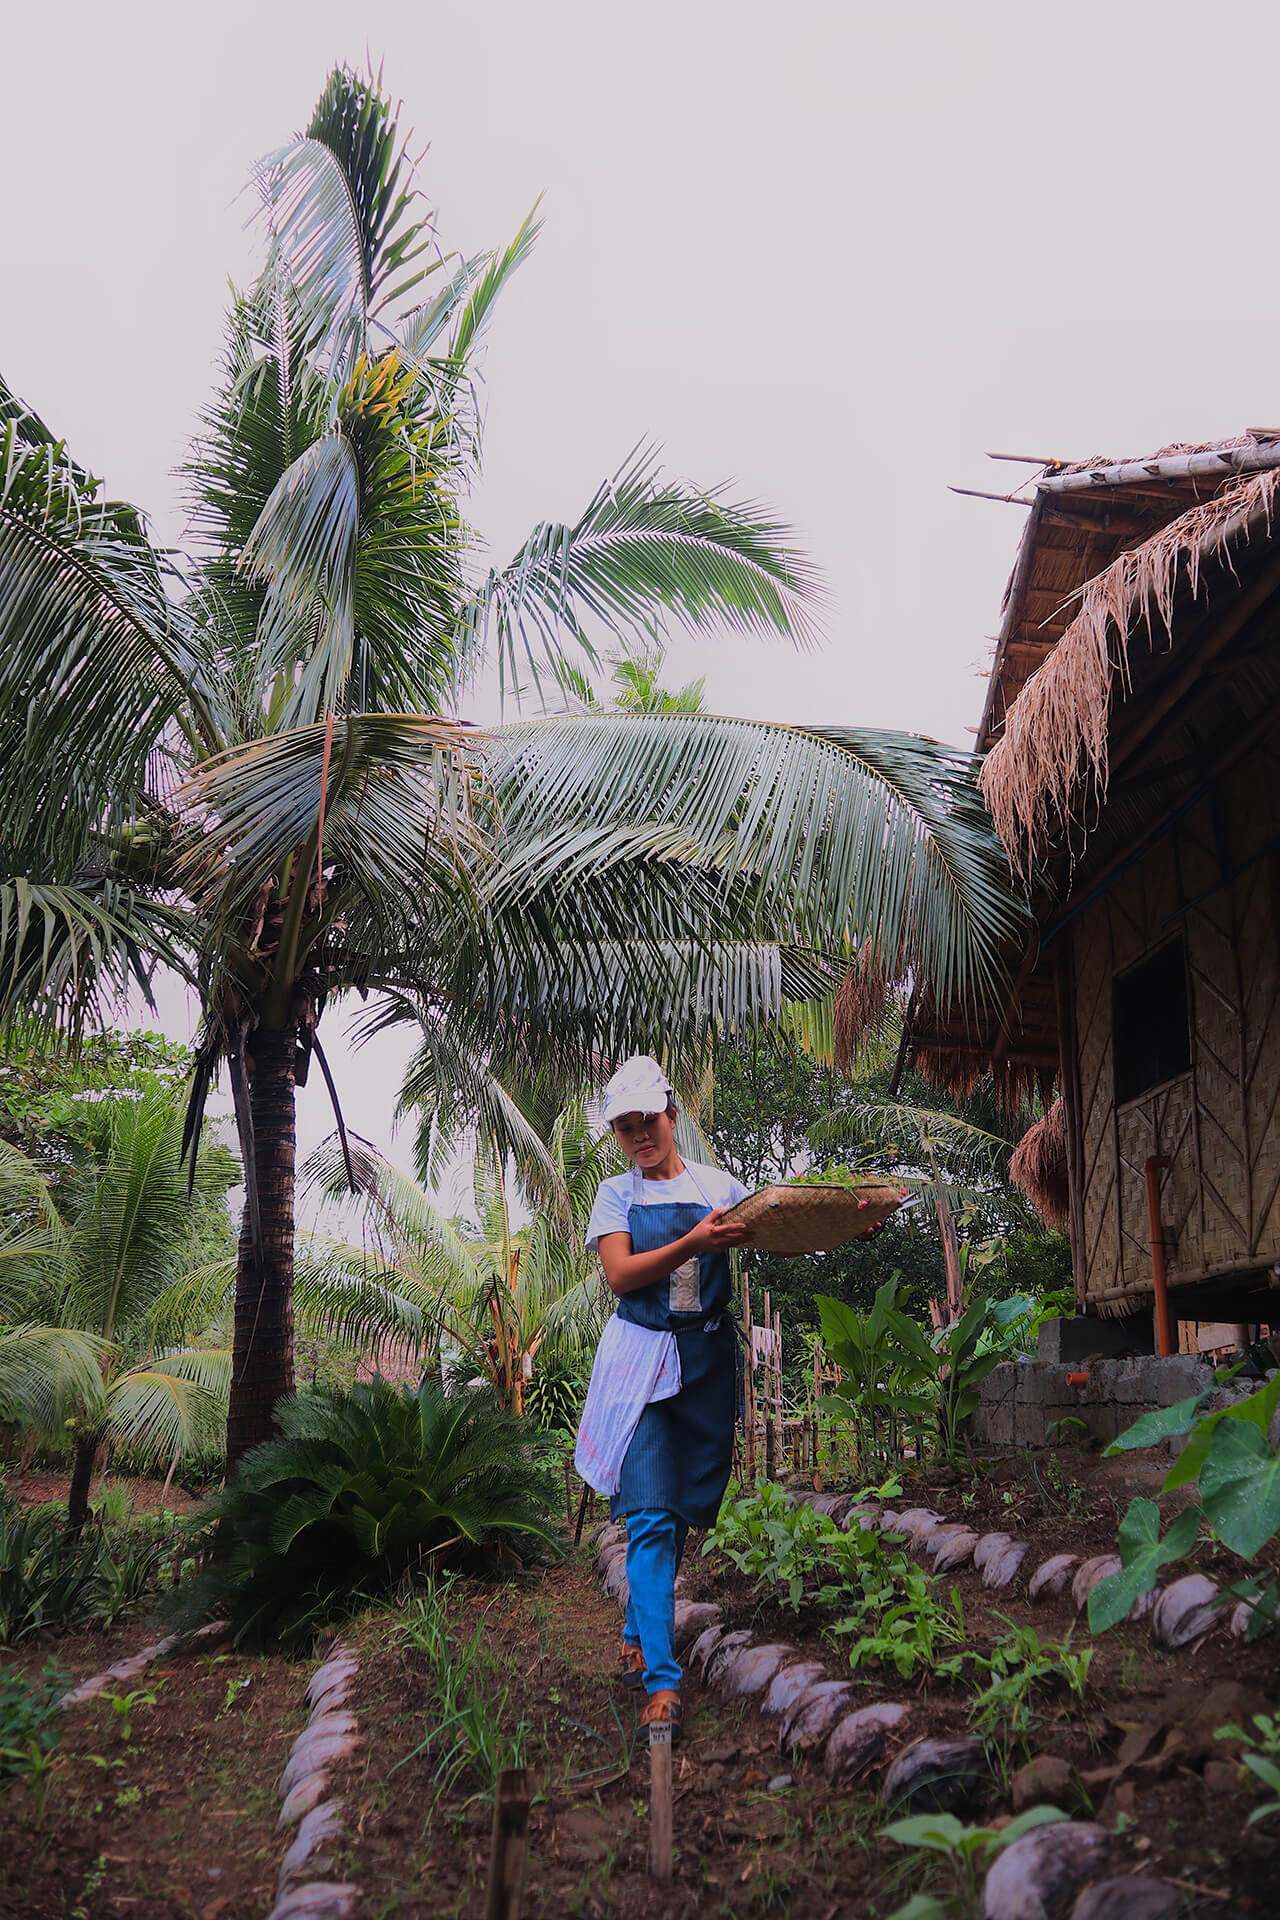 A worker harvests fresh produce in the gardens at Alpas